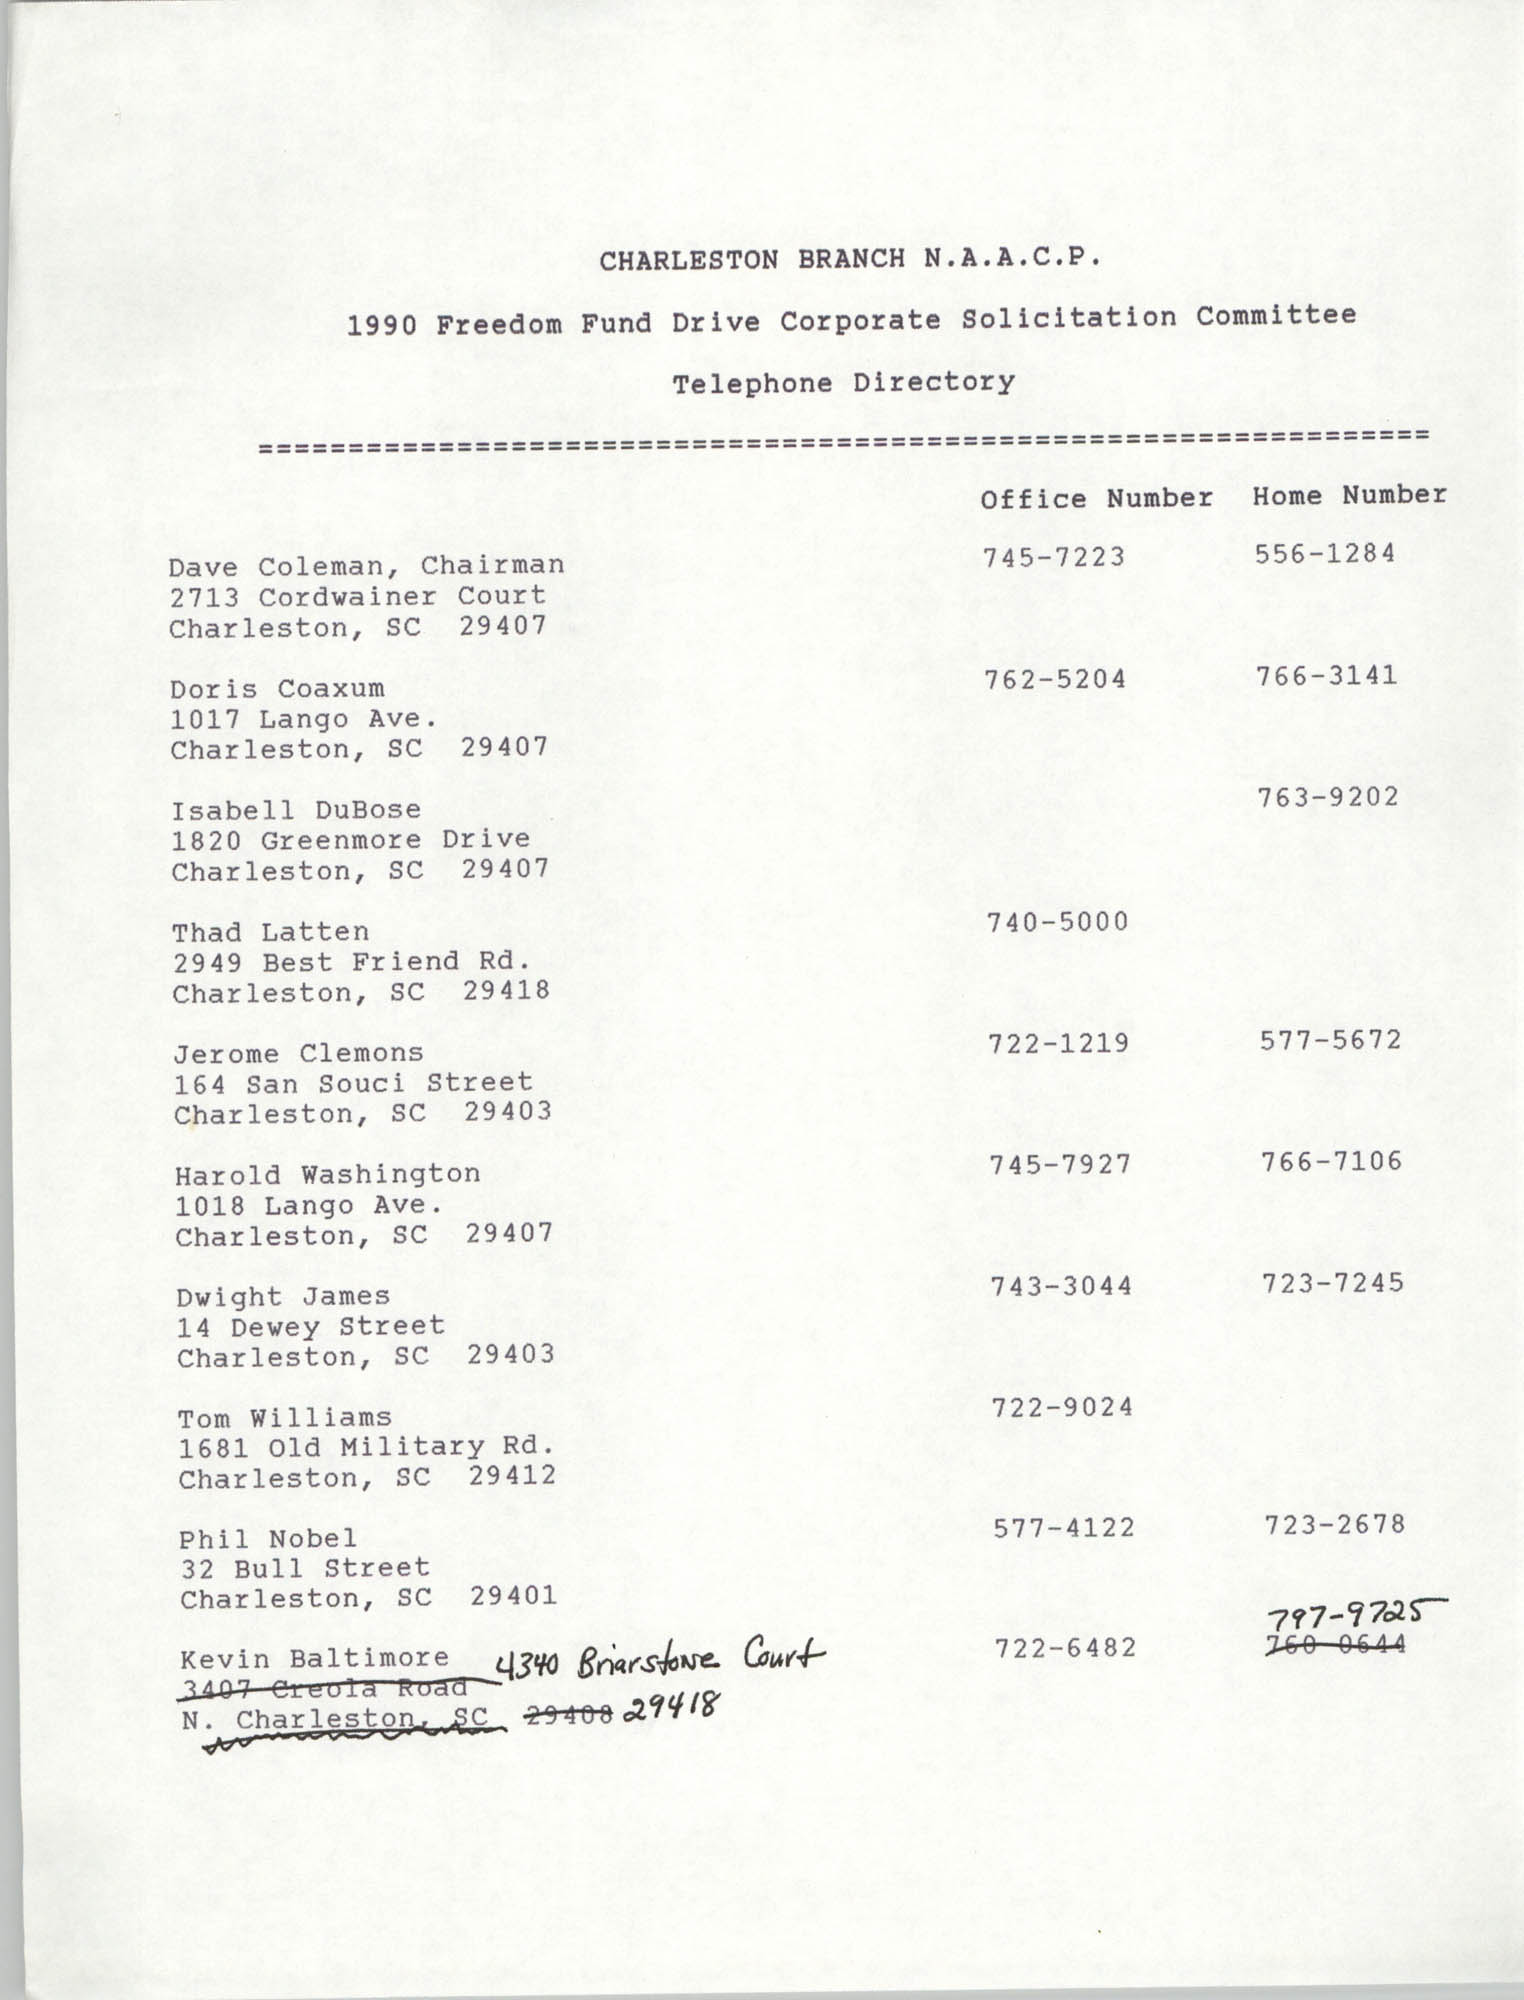 Telephone Directory, 1990 Freedom Fund Drive Corporate Solicitation Committee, National Association for the Advancement of Colored People